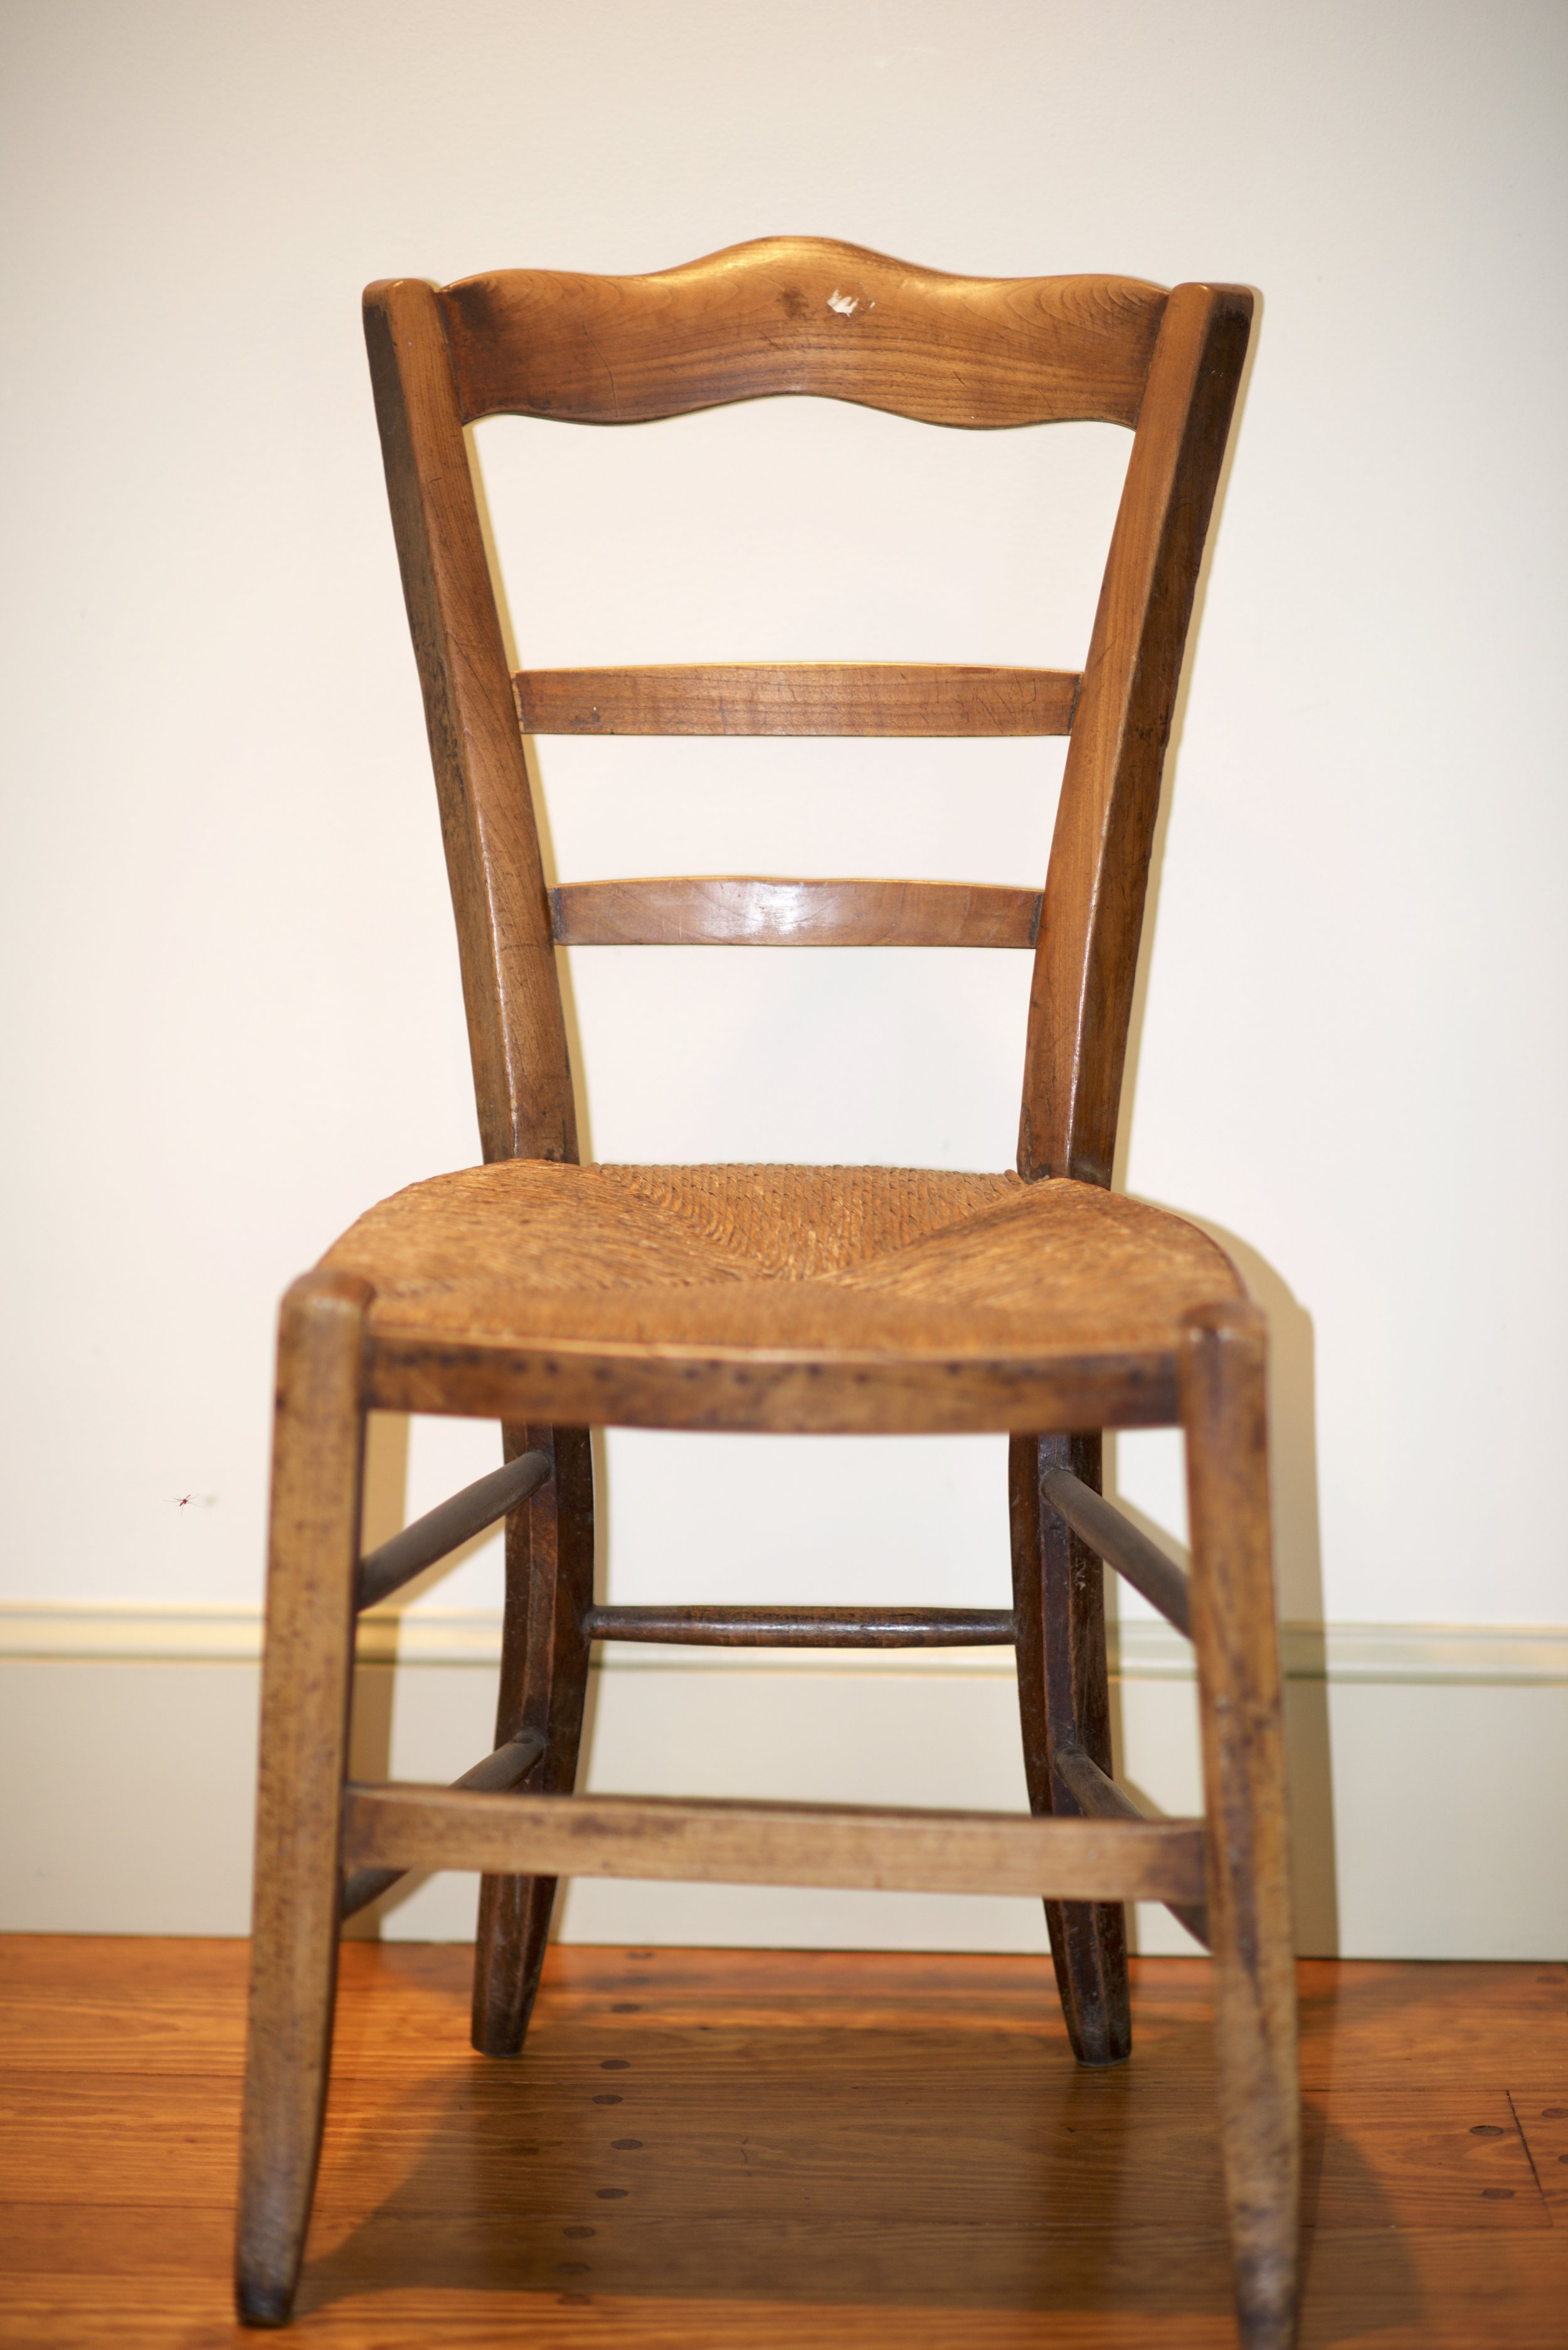 6 French Country Chairs With Rush Seats In Blond European Wood And Original  Rush.